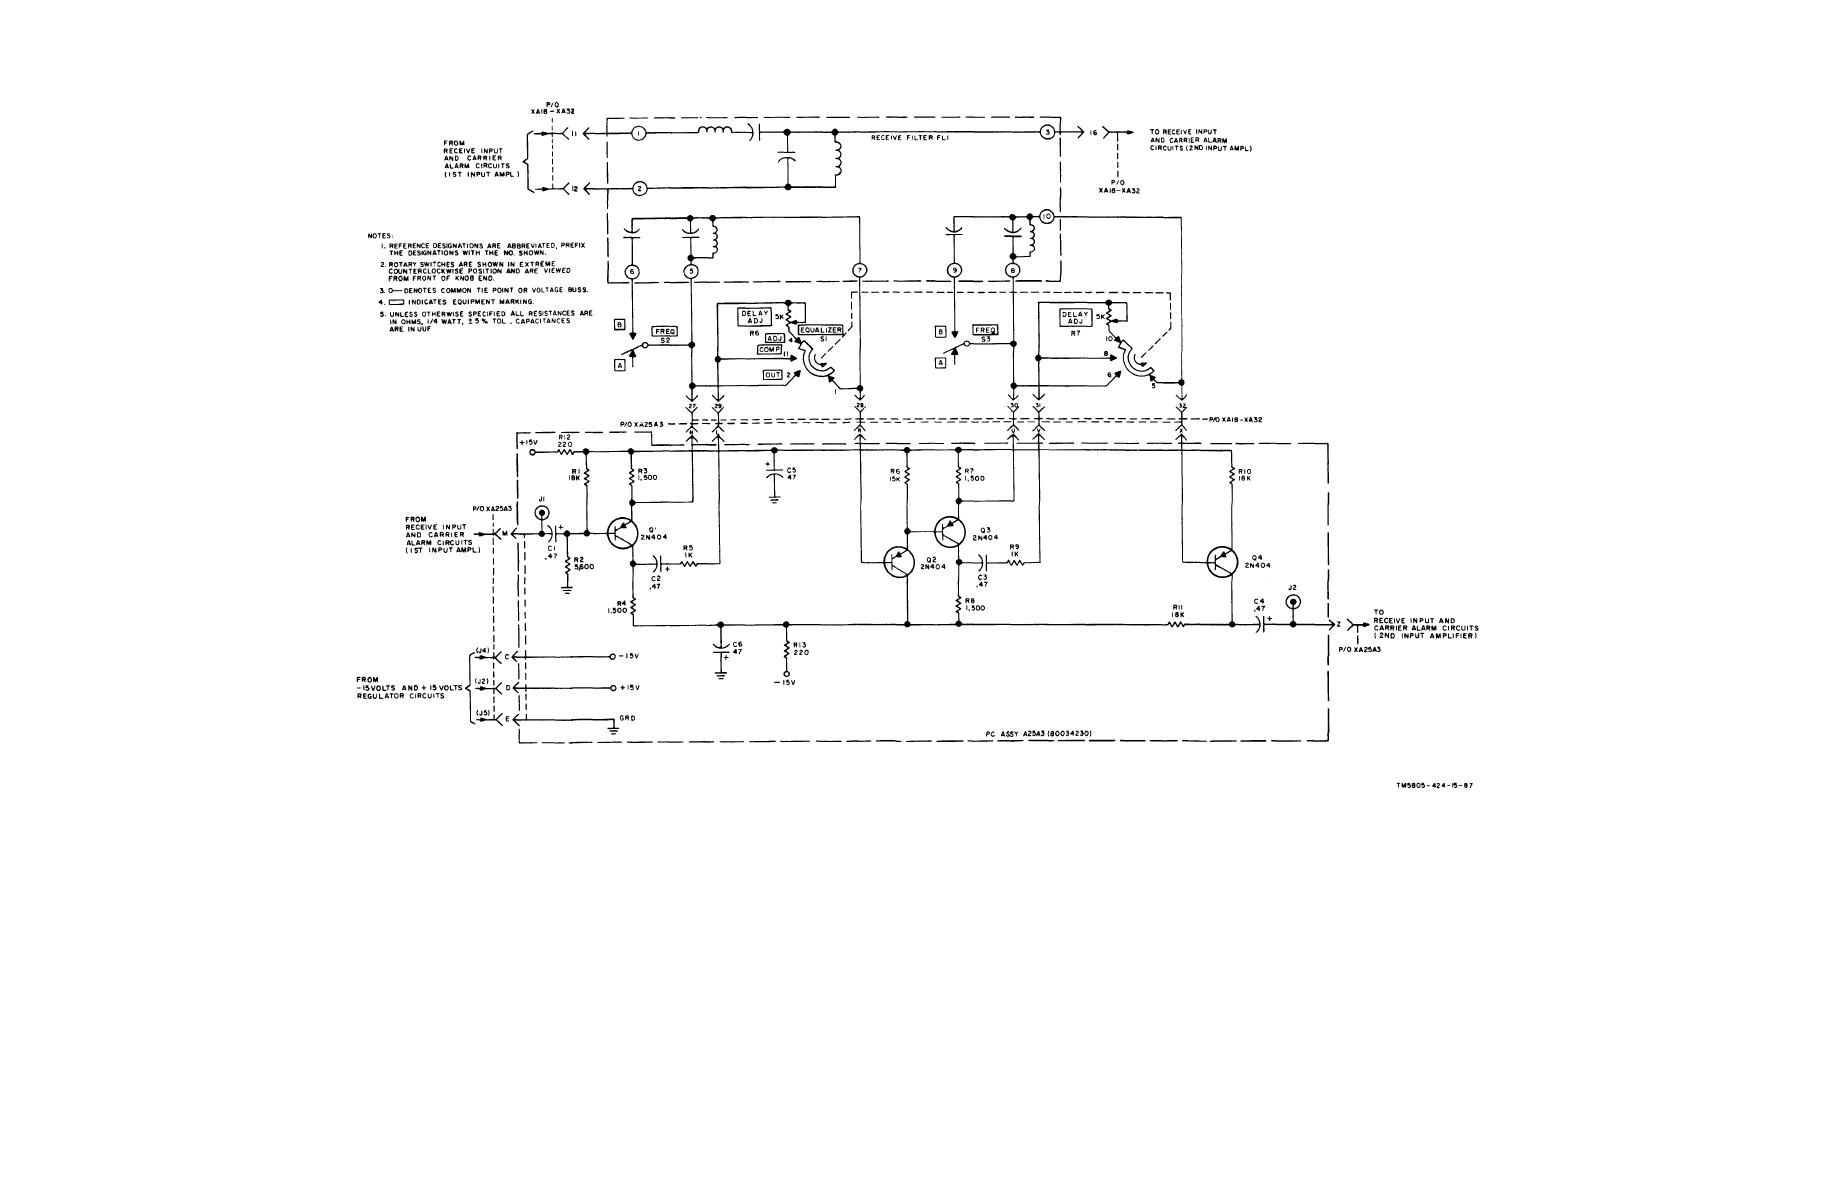 Results Page 354 About Circuit Breaker Searching Circuits At Dc Power Supply For Ham Radio Transceivers Using Ic7812 Delay Equalizer